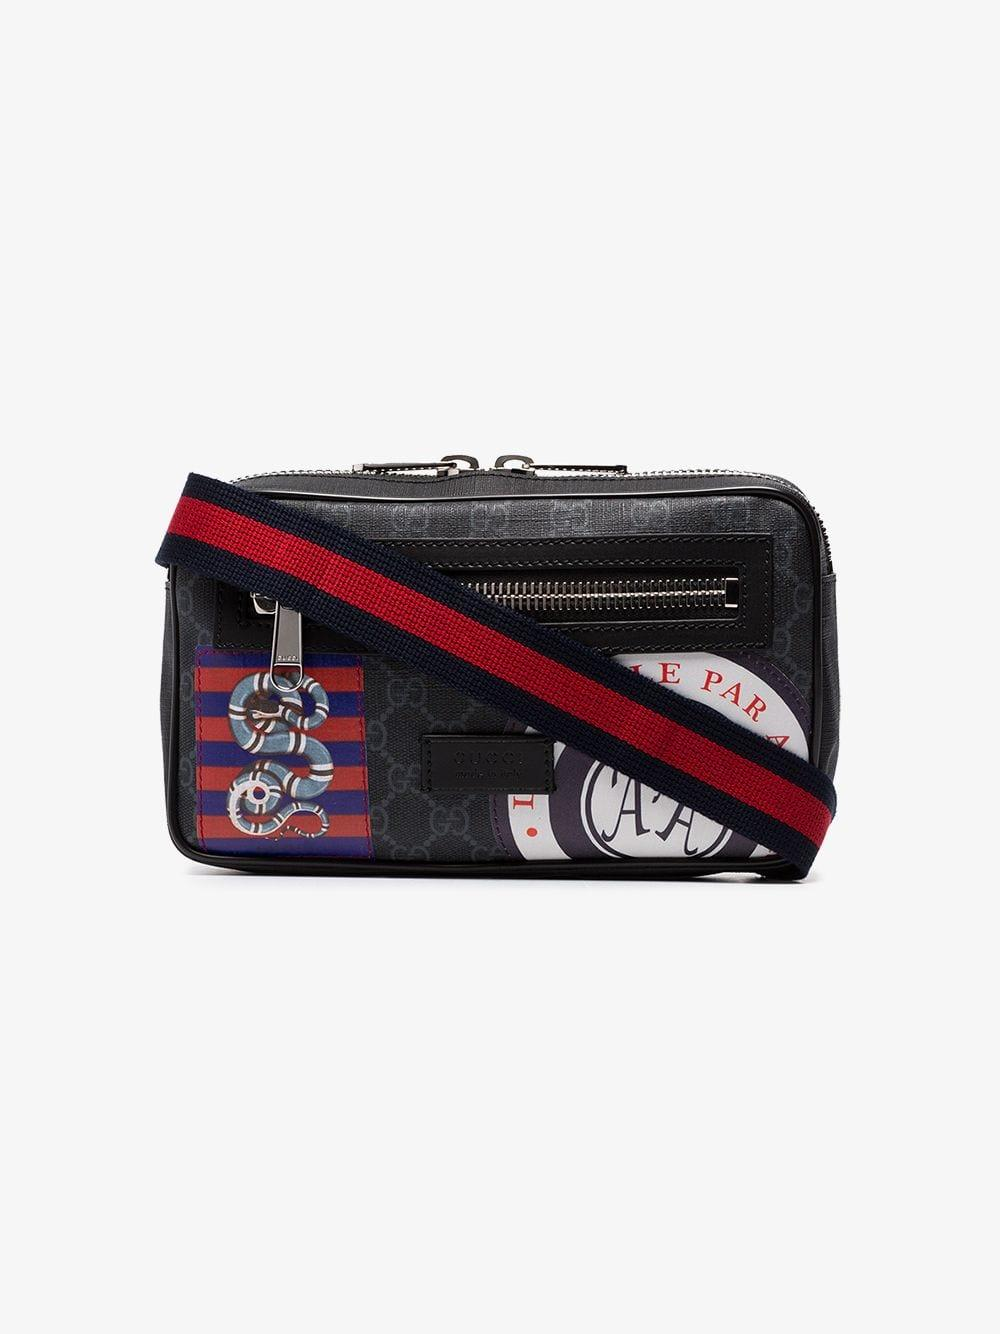 3e194720598 Lyst - Gucci Black Night Courrier Badge Embellished Crossbody Bag in ...